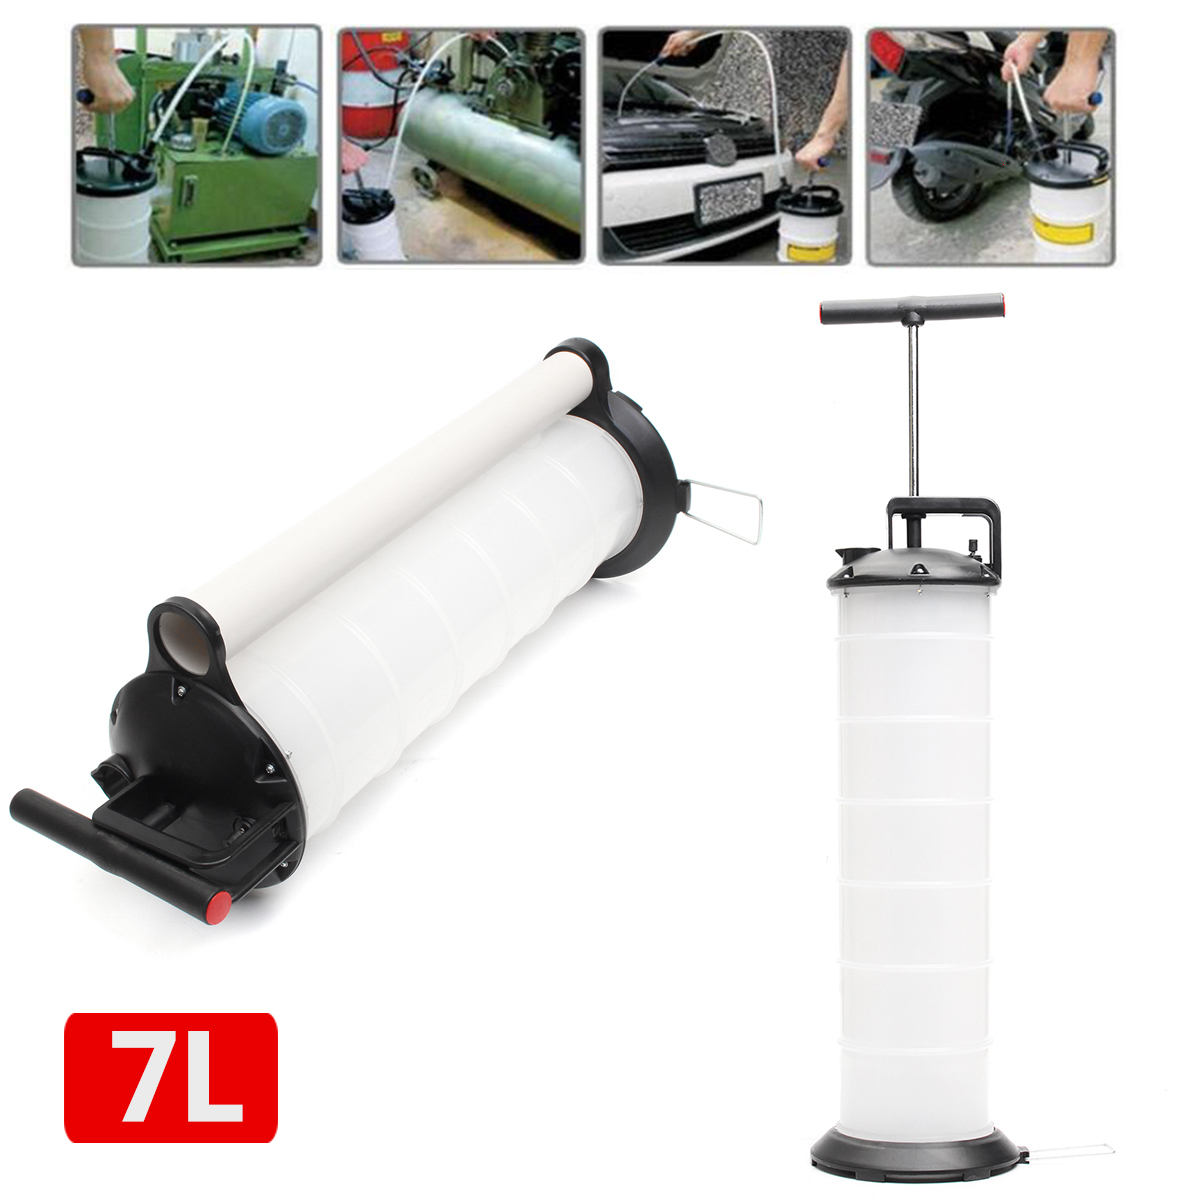 7L Manual Car Oil Vacuum Extractor Pump Petrol Water Suction ExtractionTransfer Fluid Fuel Transfer Oil Tank Pump for Car Boat 7l manual car oil vacuum extractor pump petrol water suction extractiontransfer fluid fuel transfer oil tank pump for car boat